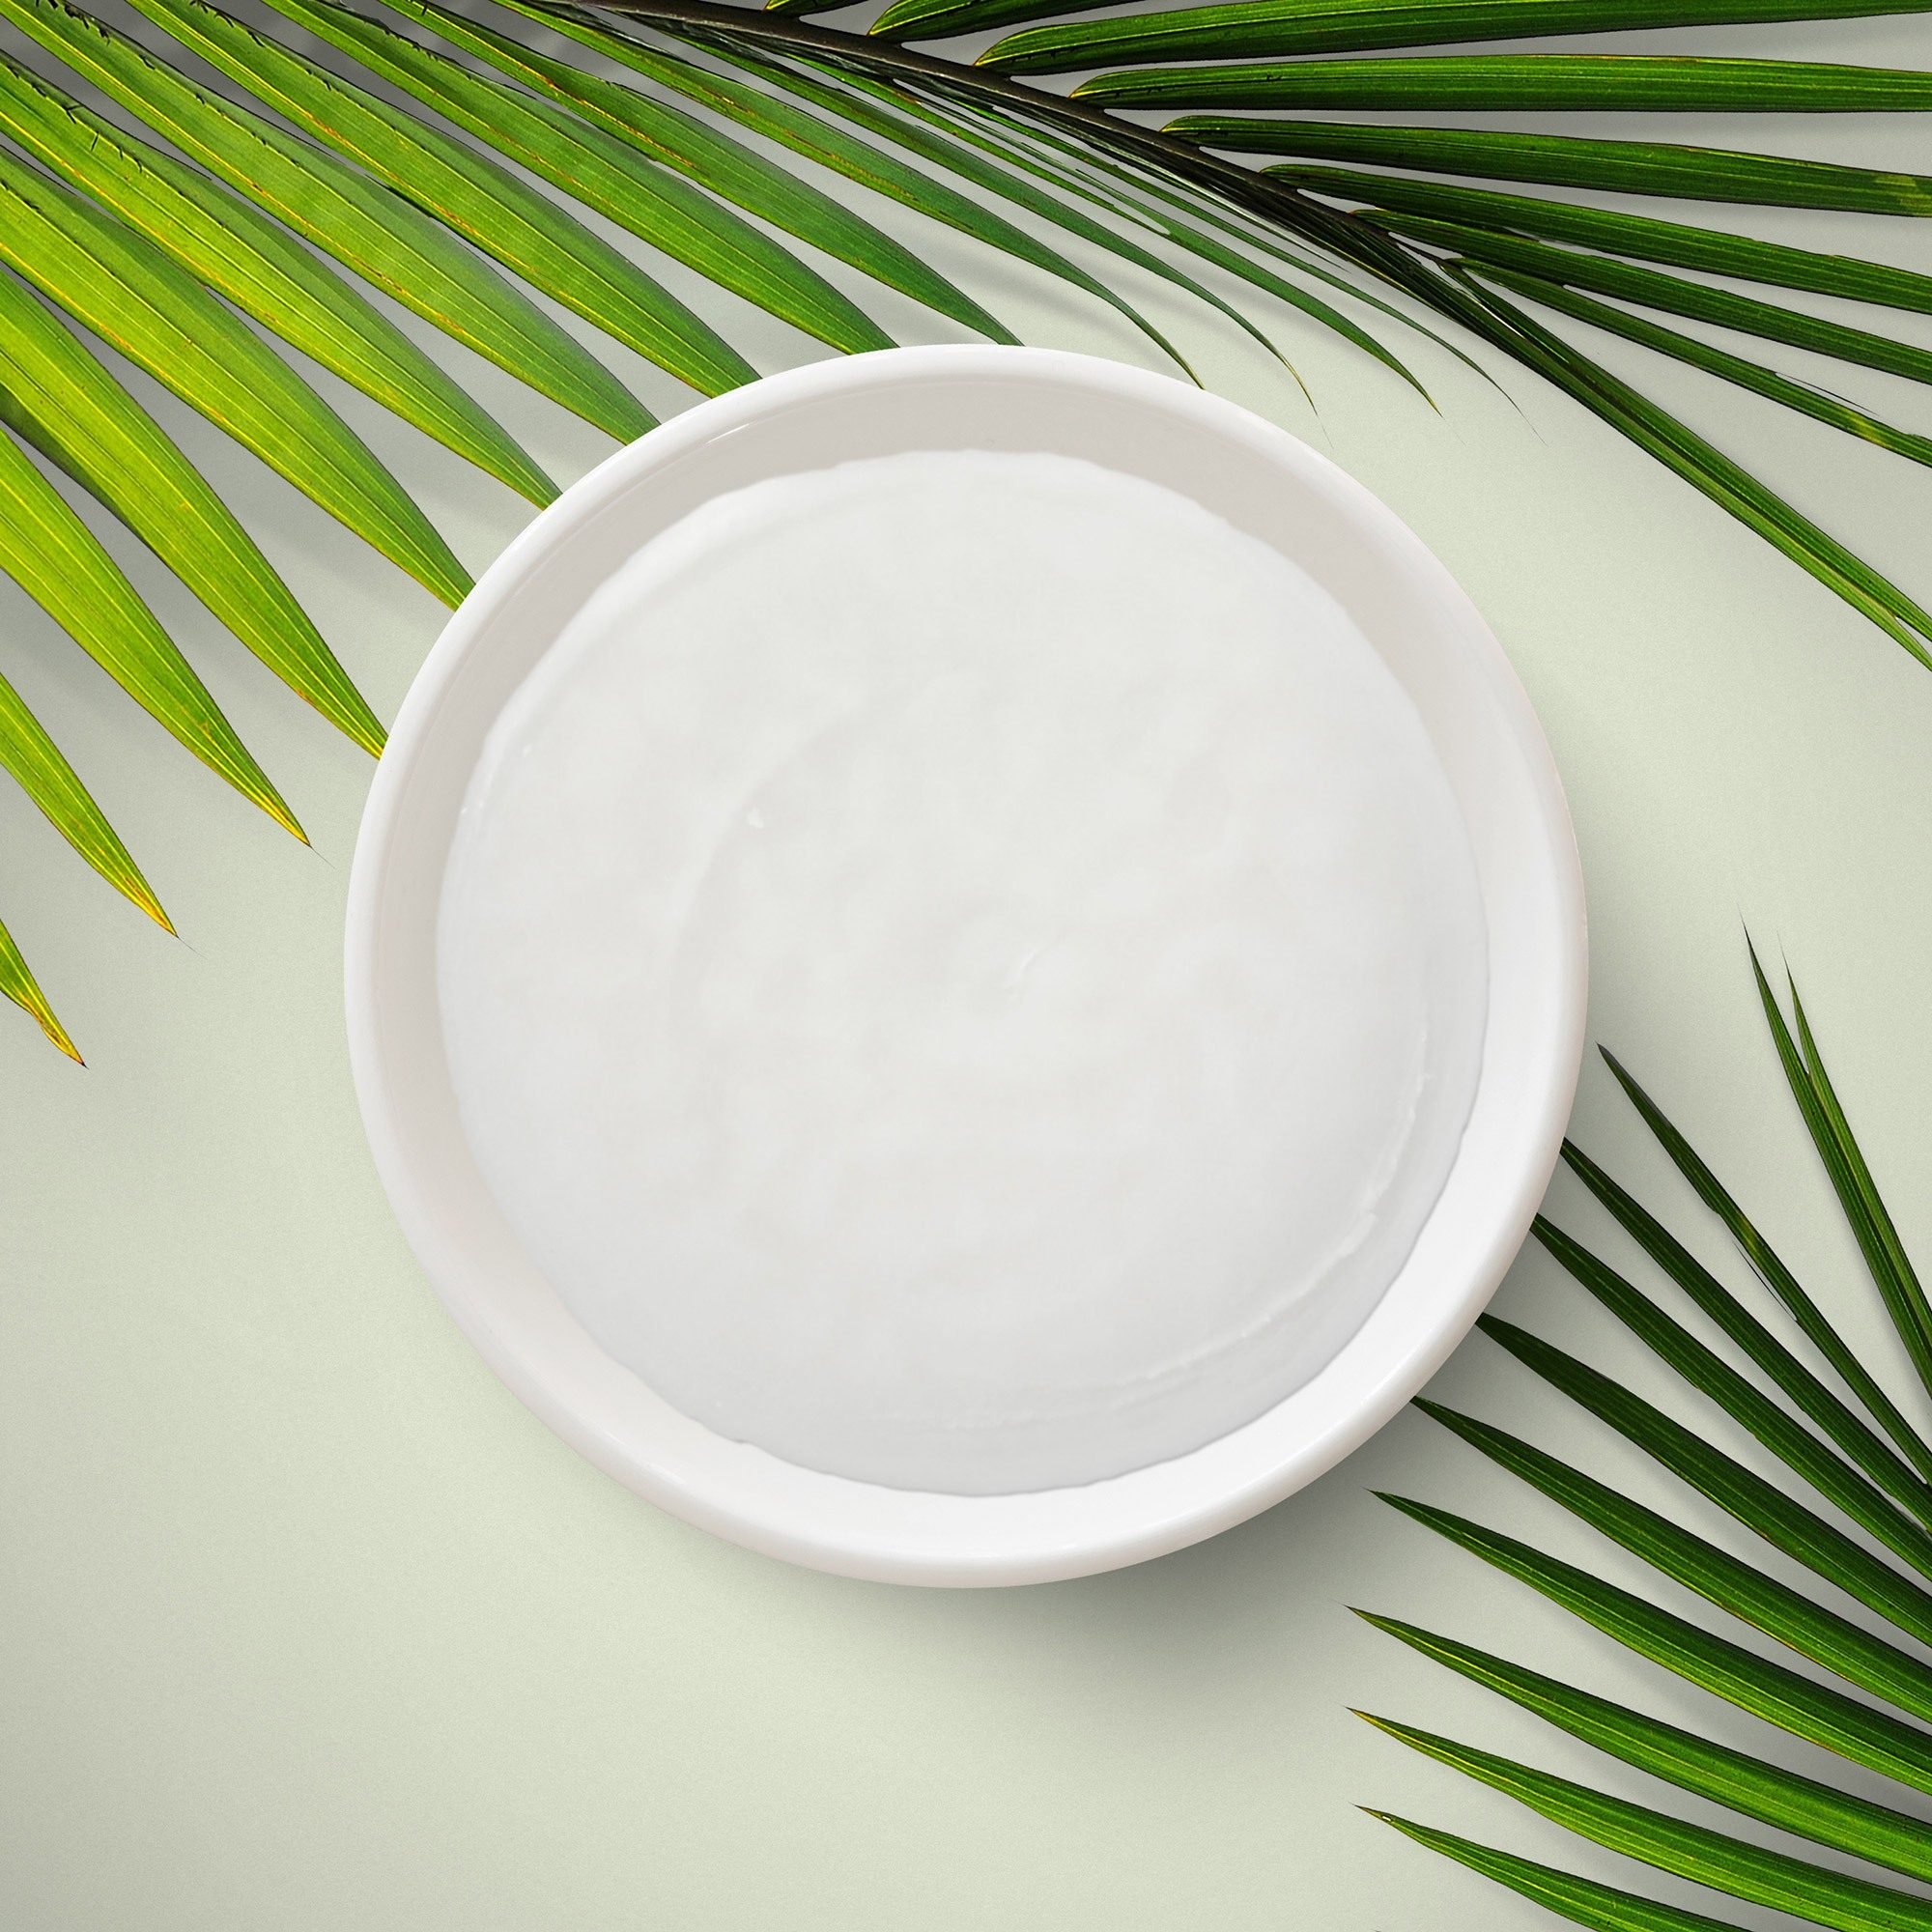 Cetyl alcohol, a thick, white liquid, in a bowl on a green background with palm leaves around.